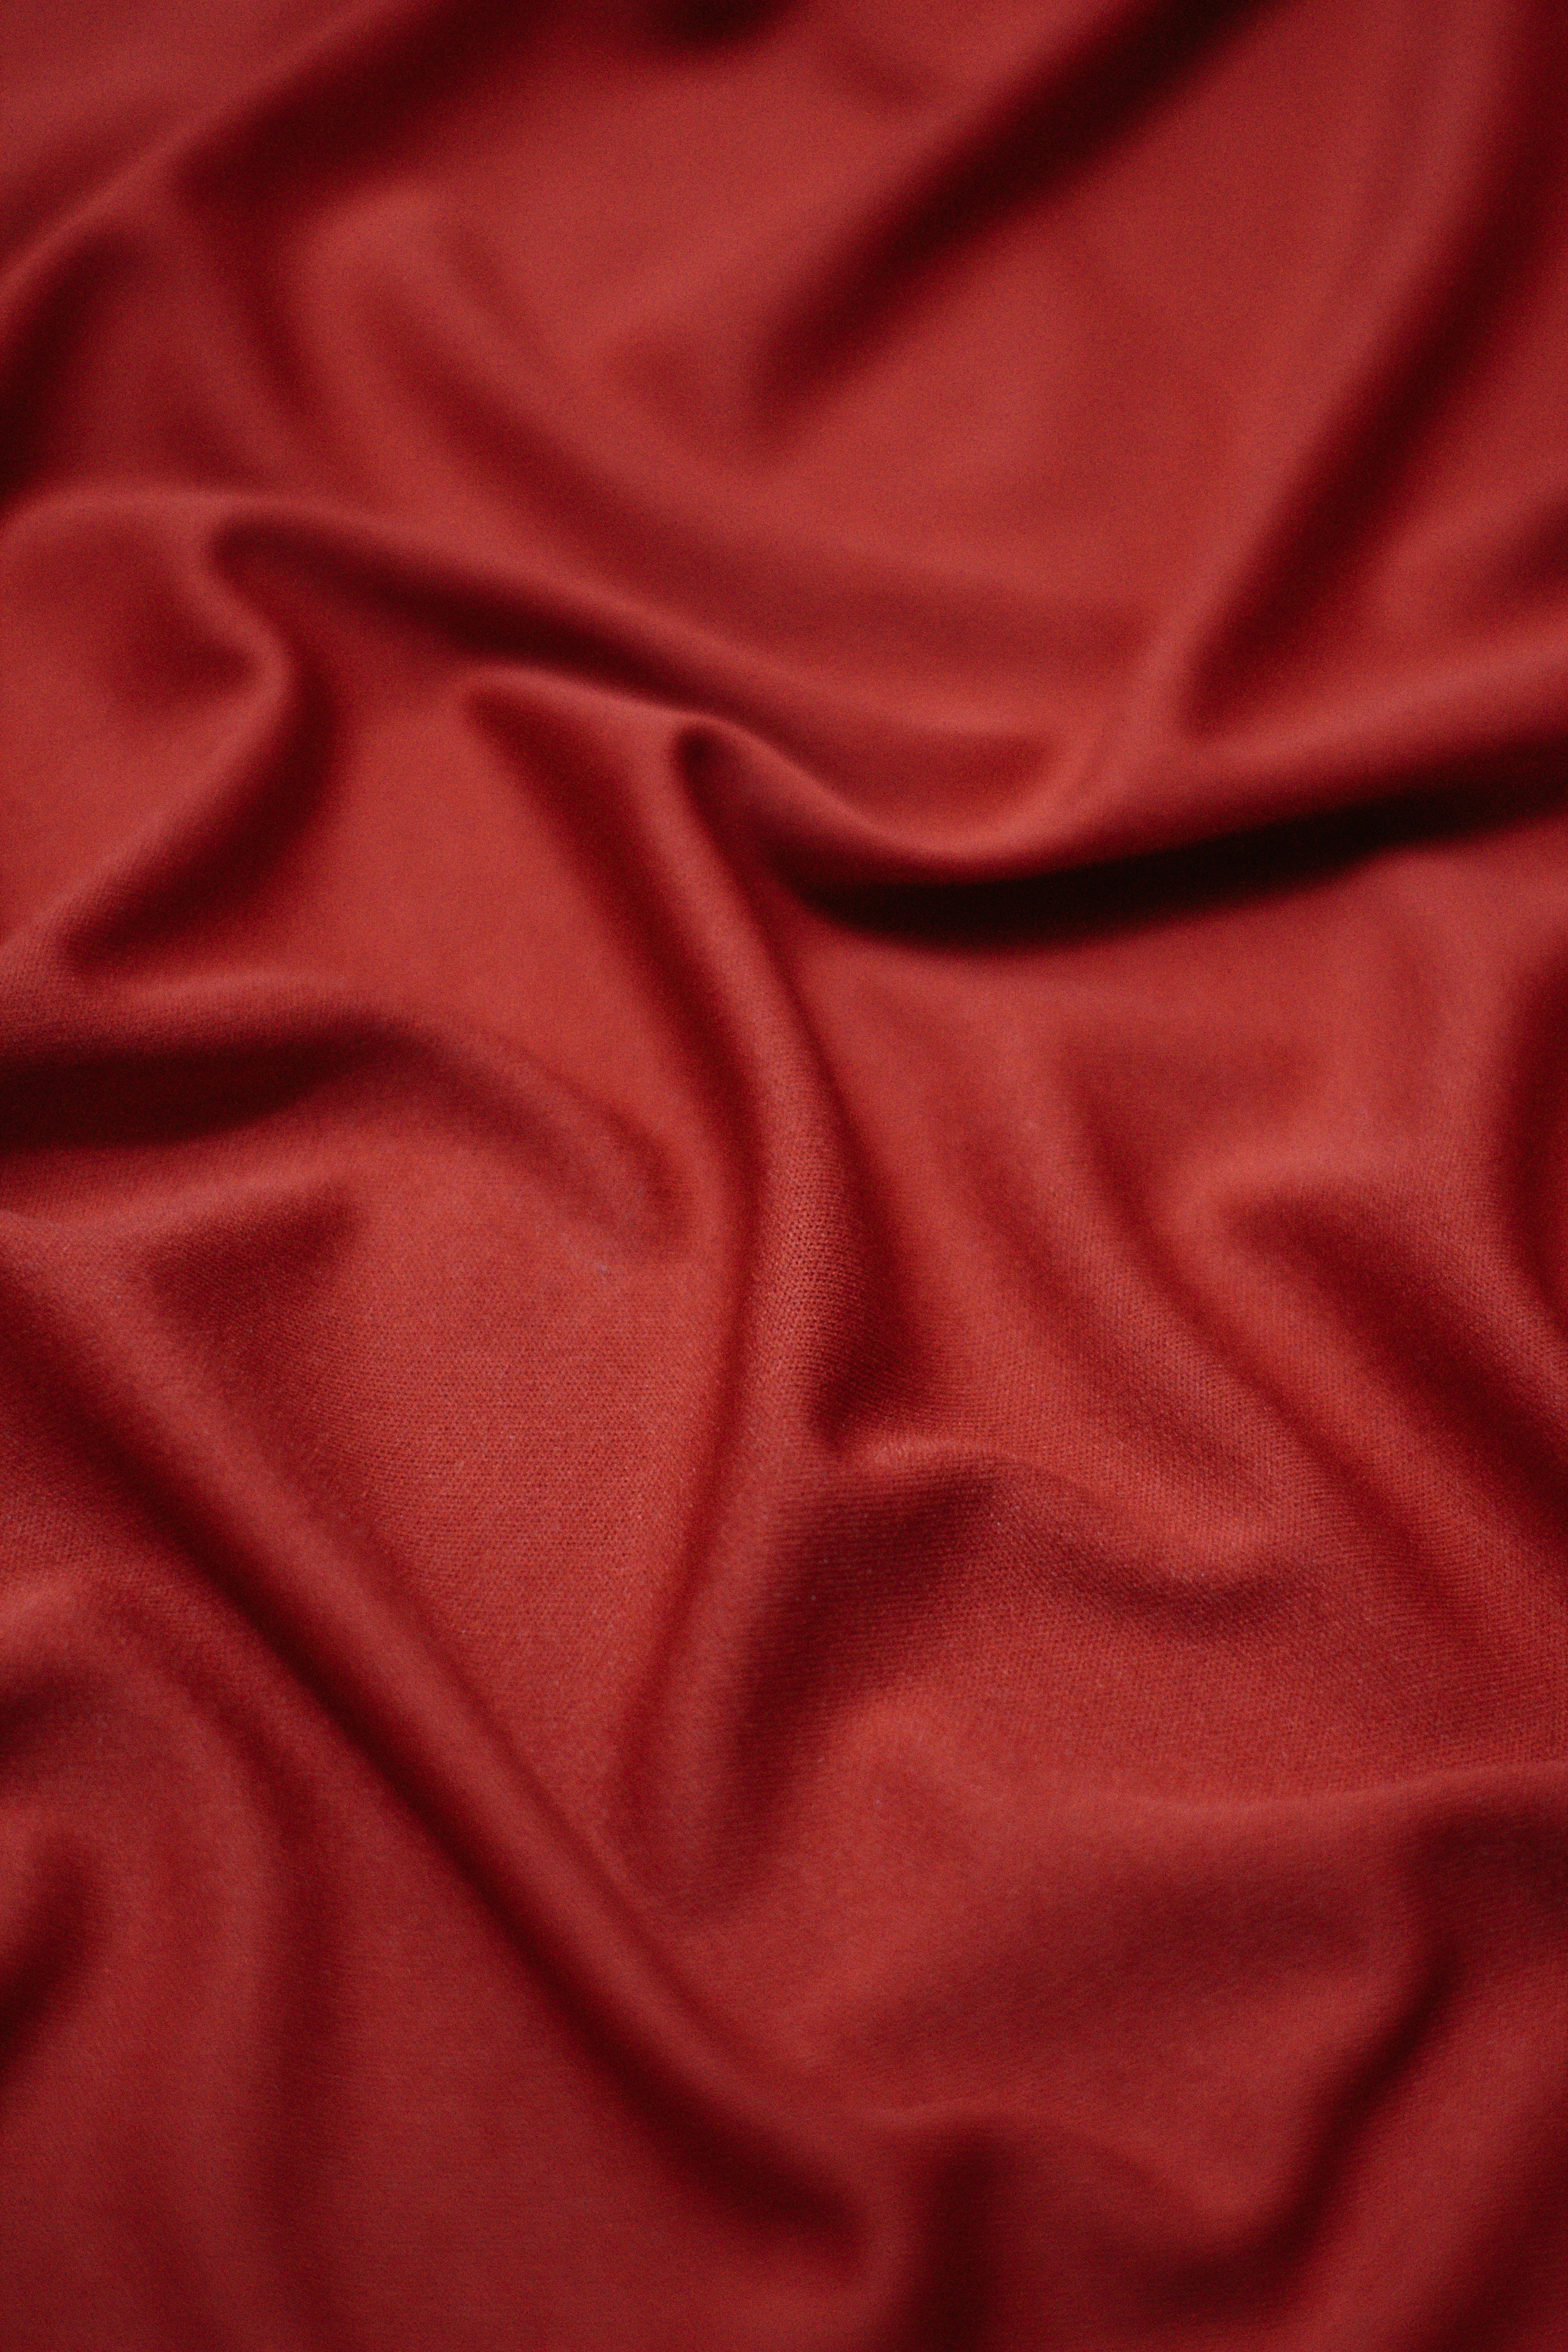 89762 download wallpaper Textures, Texture, Cloth, Folds, Pleating screensavers and pictures for free